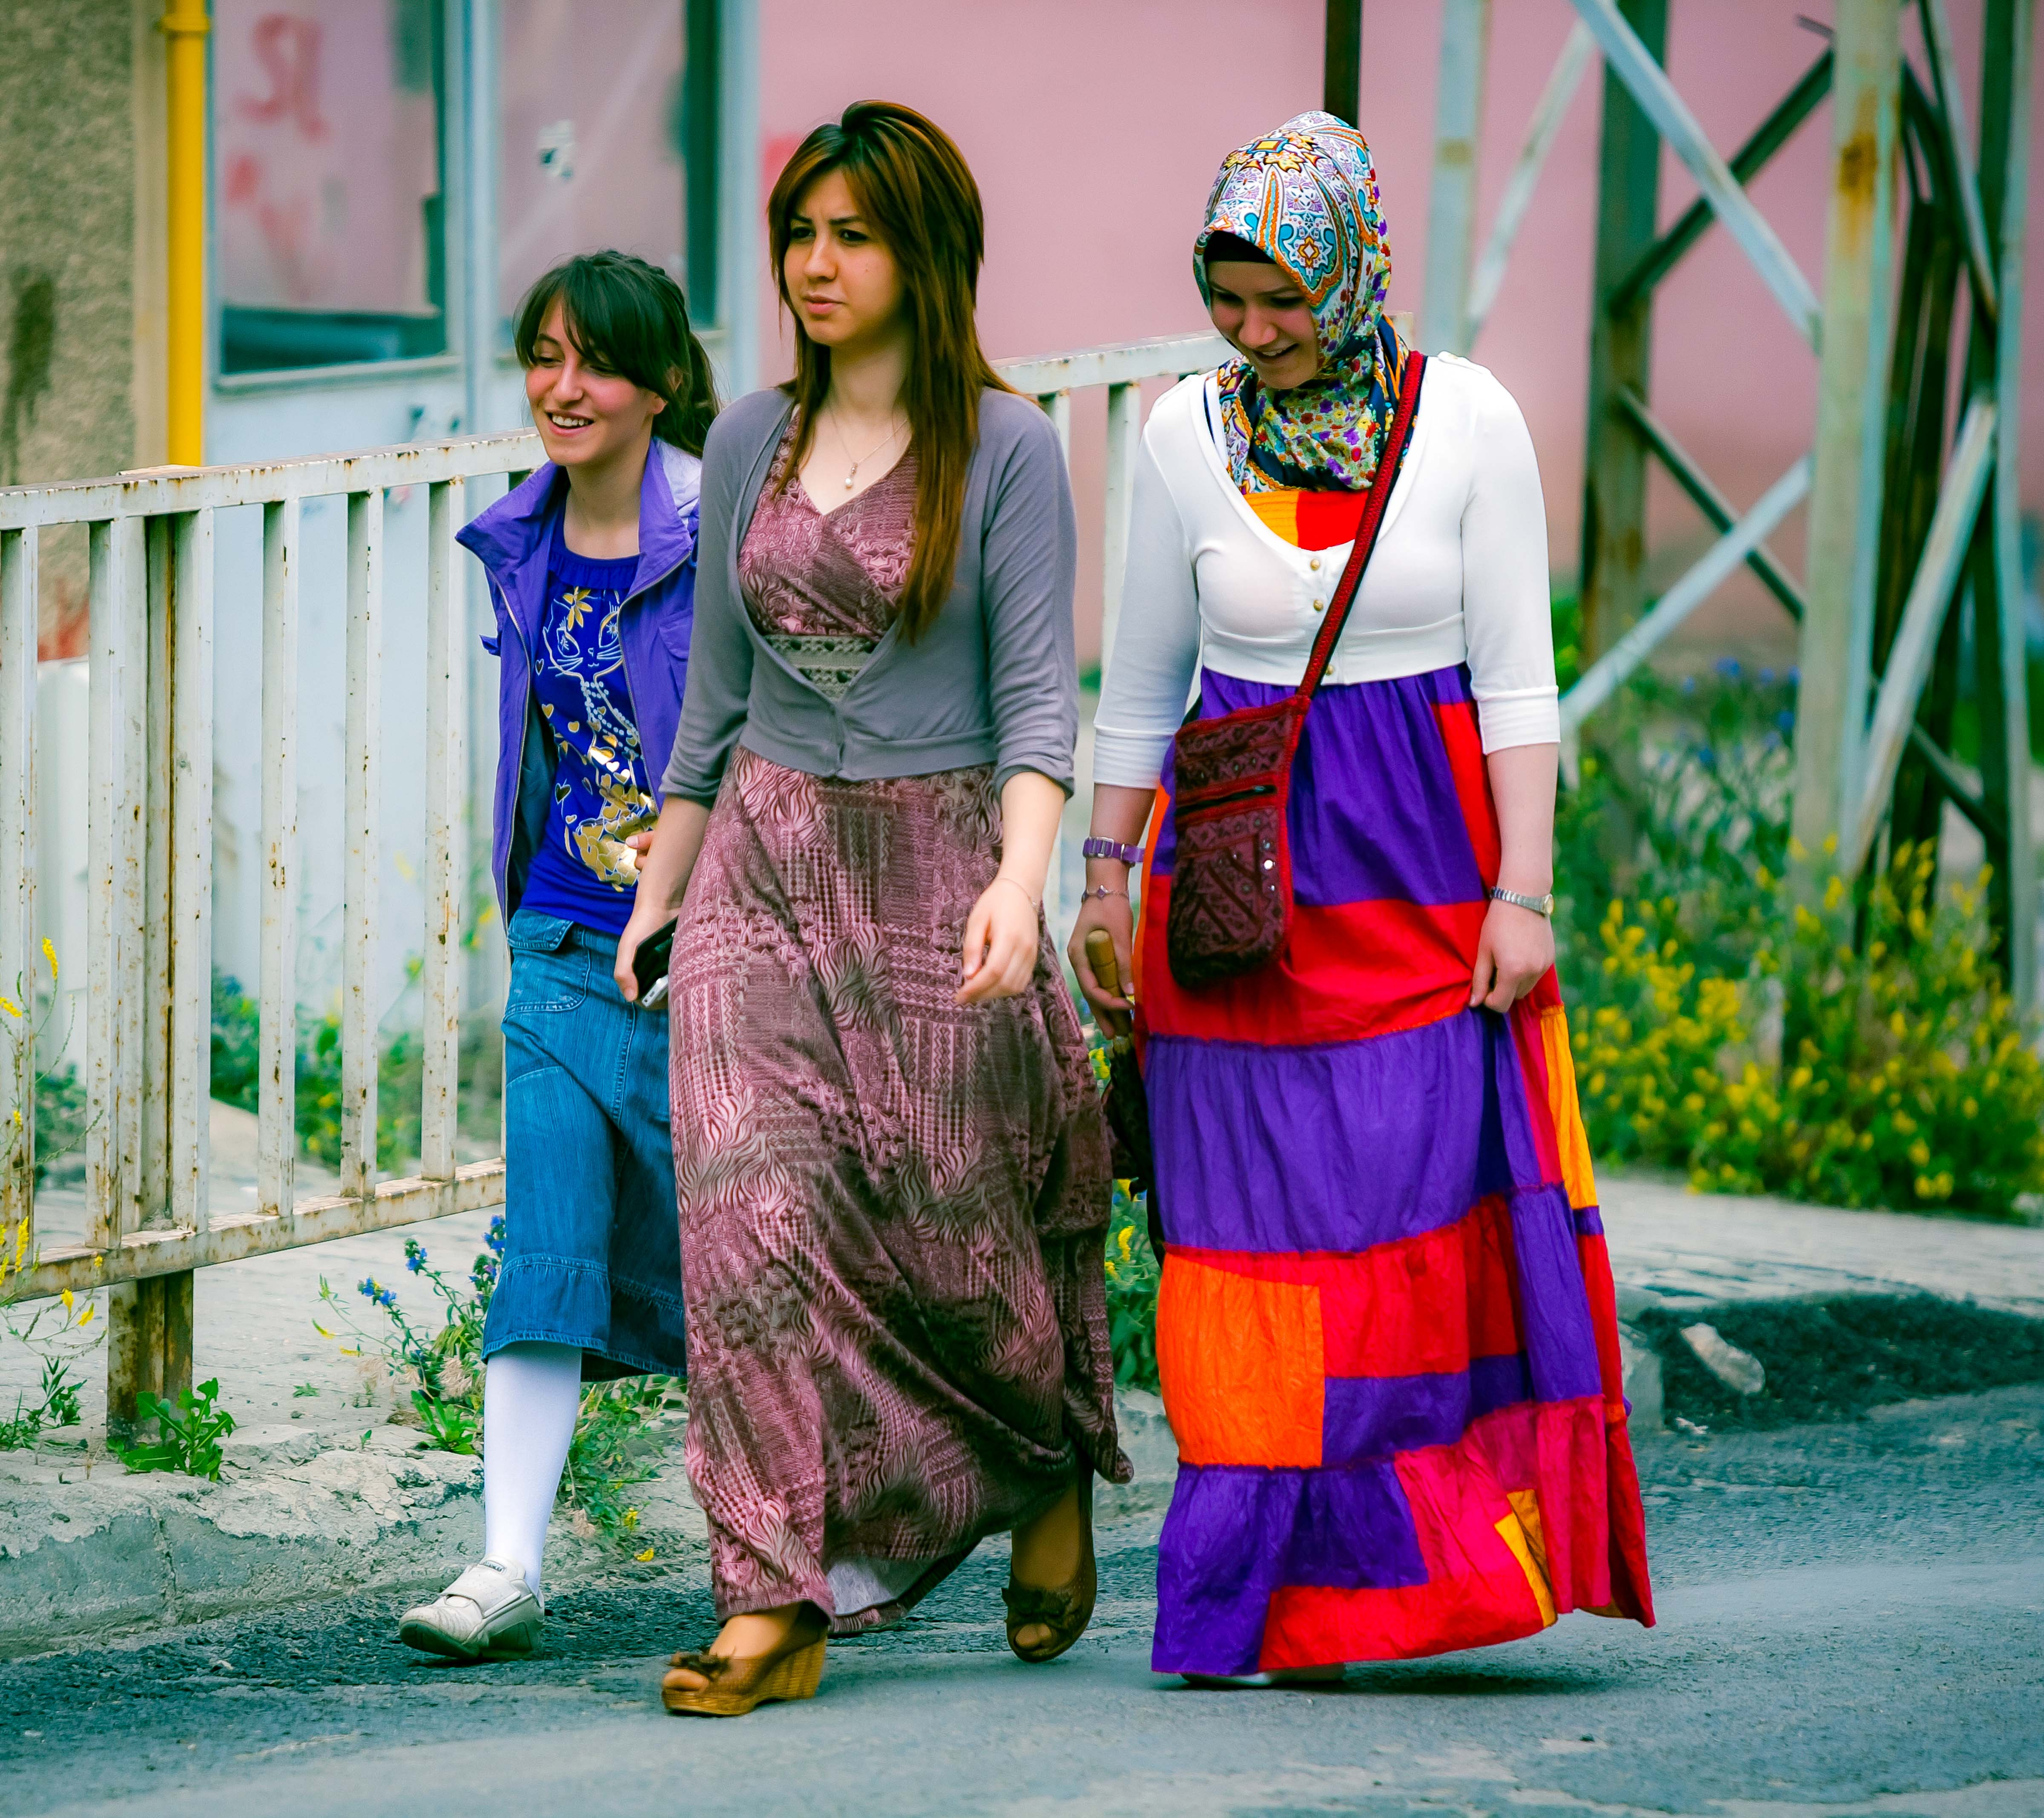 Turkey, Bayburt Prov, Three Women, 2010, IMG 7303